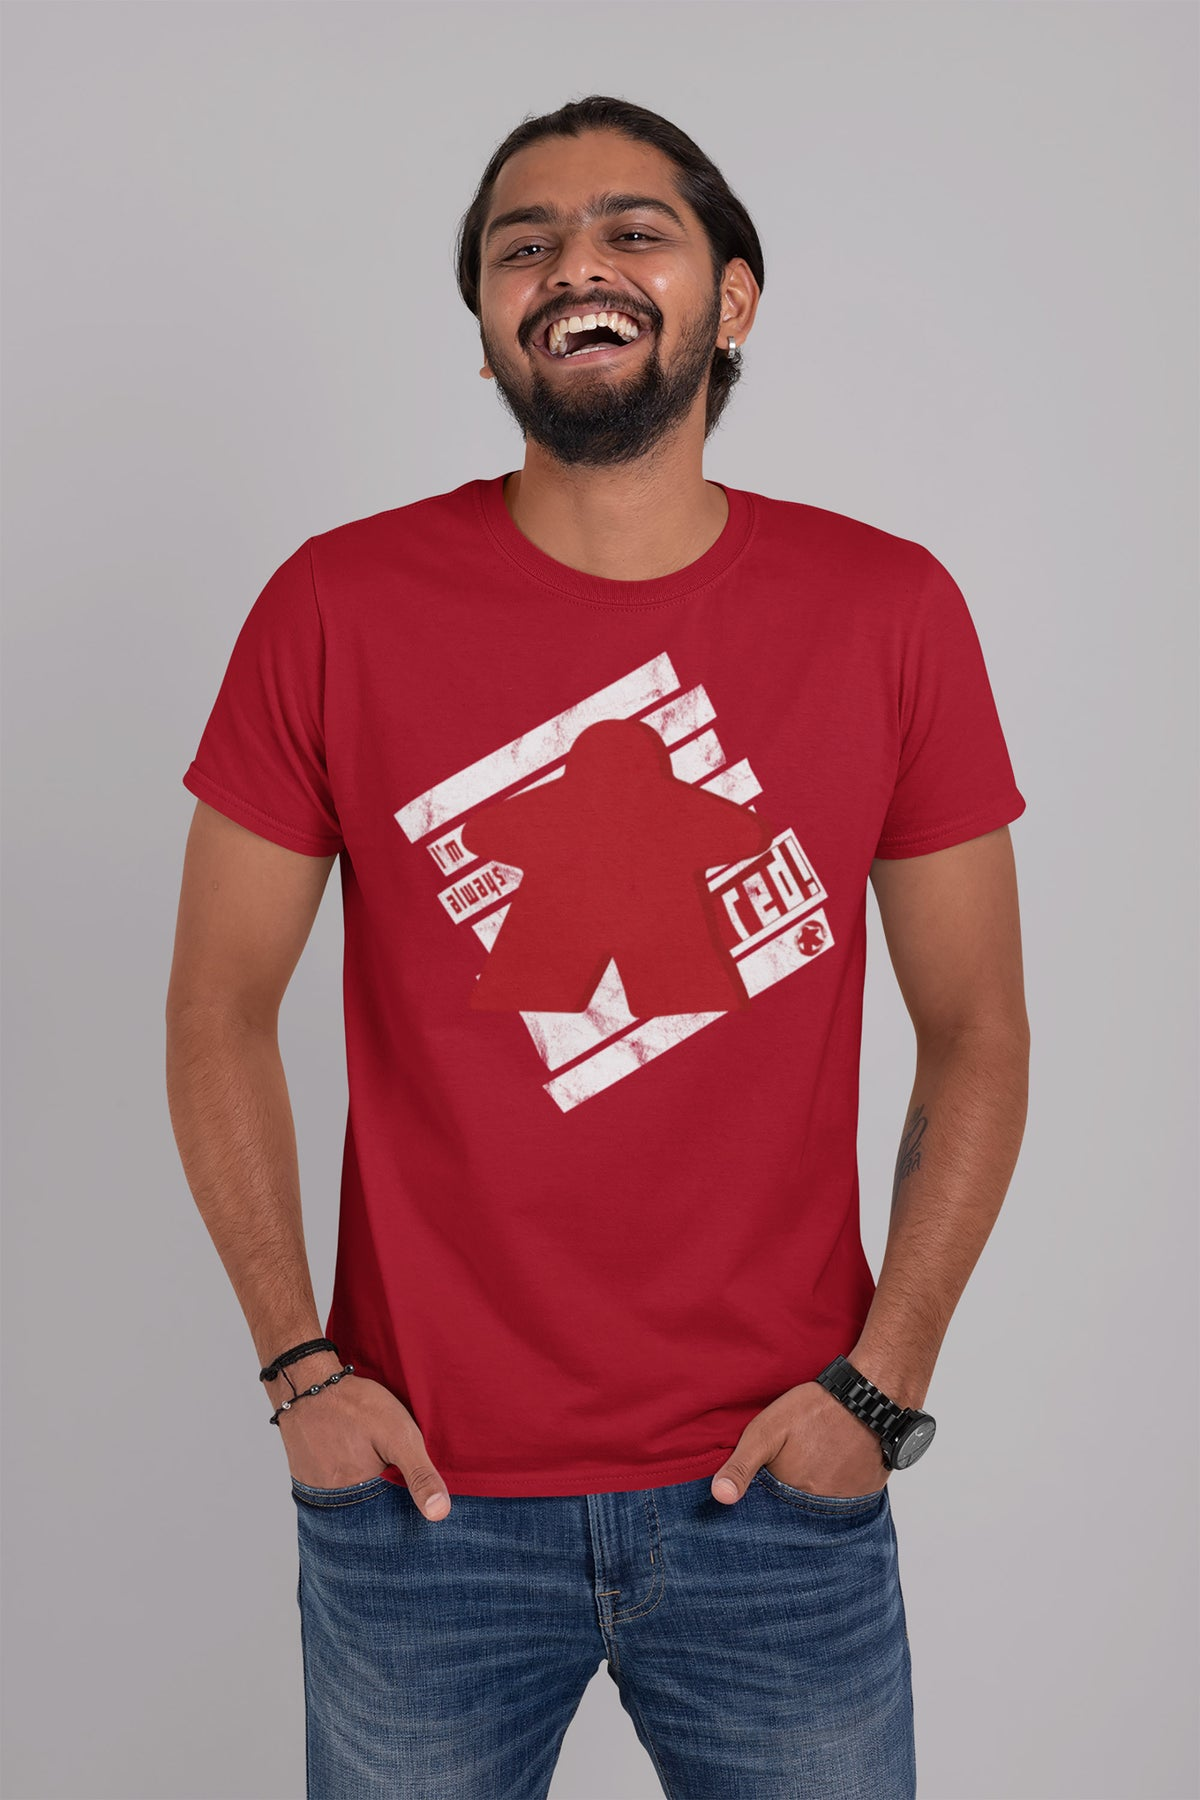 I'm Always Red Meeple Board Game T-Shirt Action Shot Men's